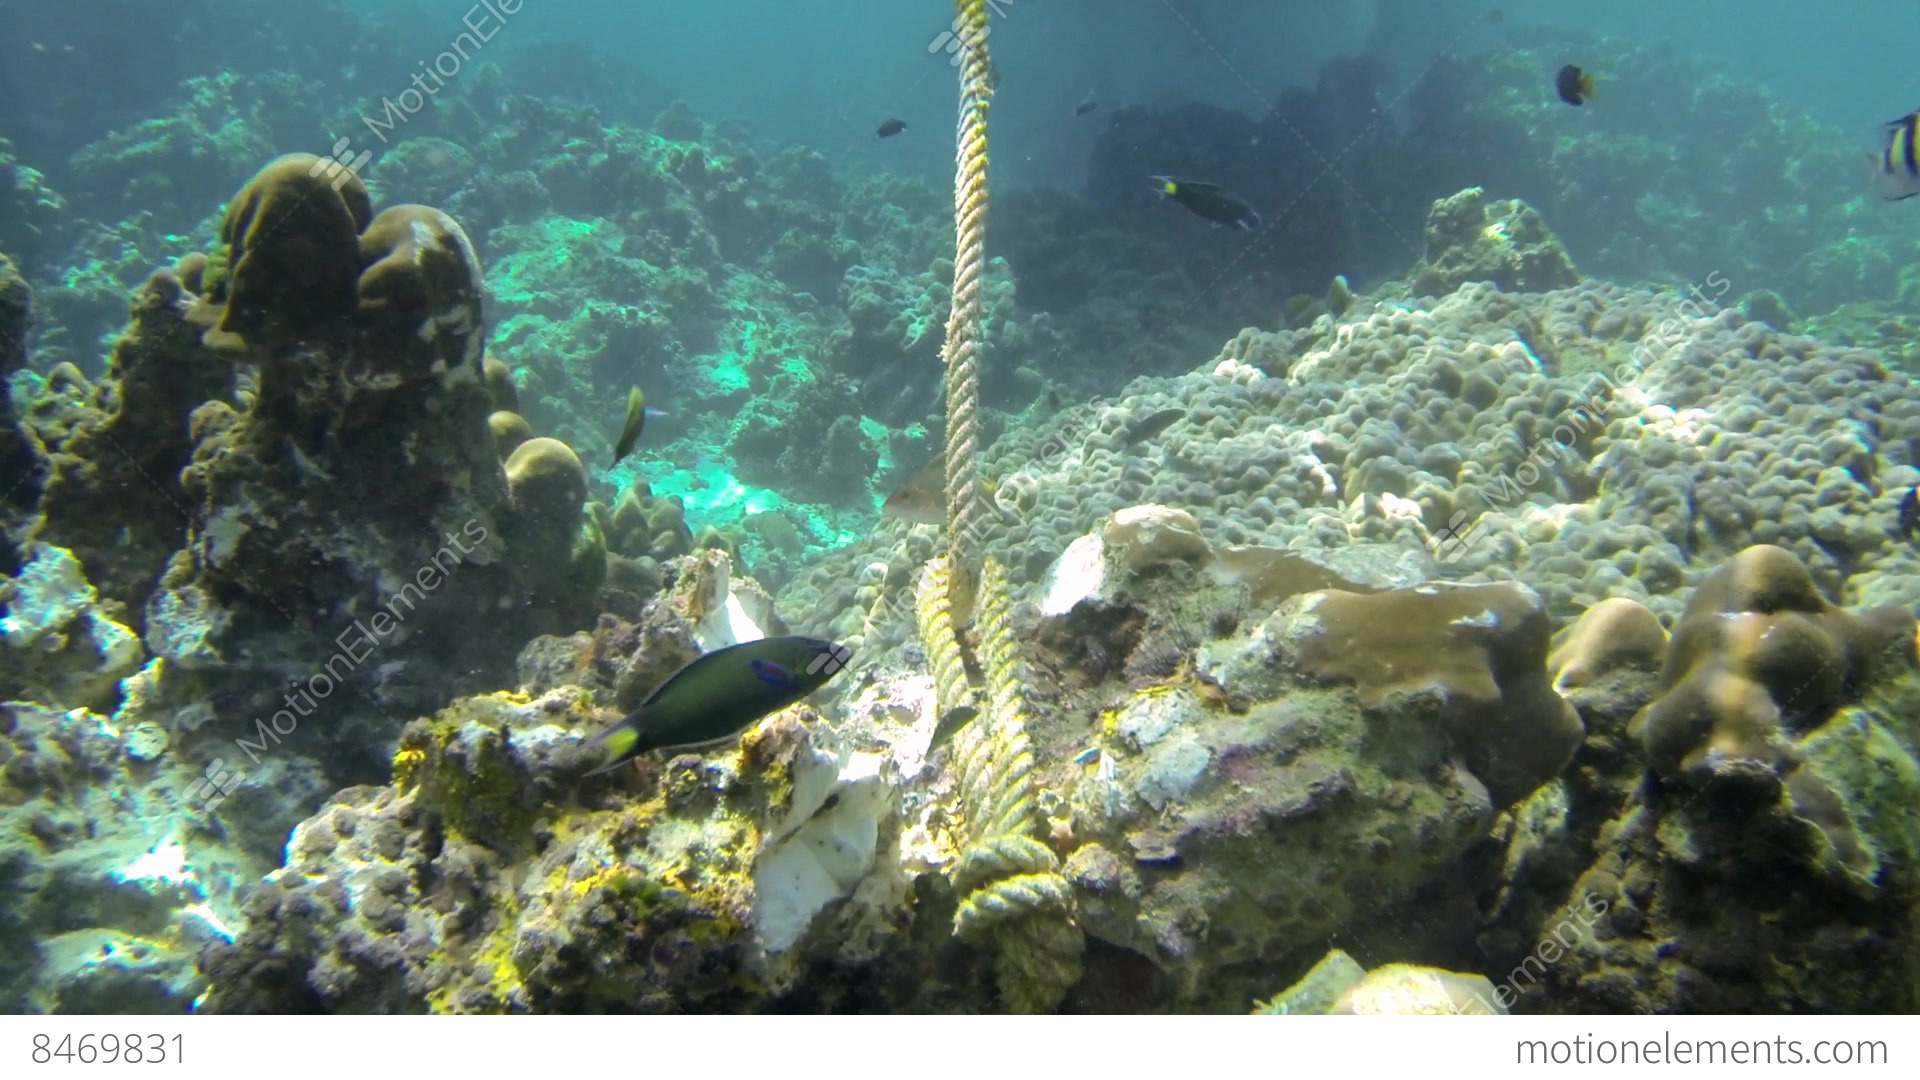 endangerment of coral reefs However, not all ecosystems are endangered and, in fact, in a lot of cases many species and populations are on the increase, evolving to suit a changing habitat so what's all the hassle about focusing on those ecosystems most at risk not all environments are exposed and pressured by the same.